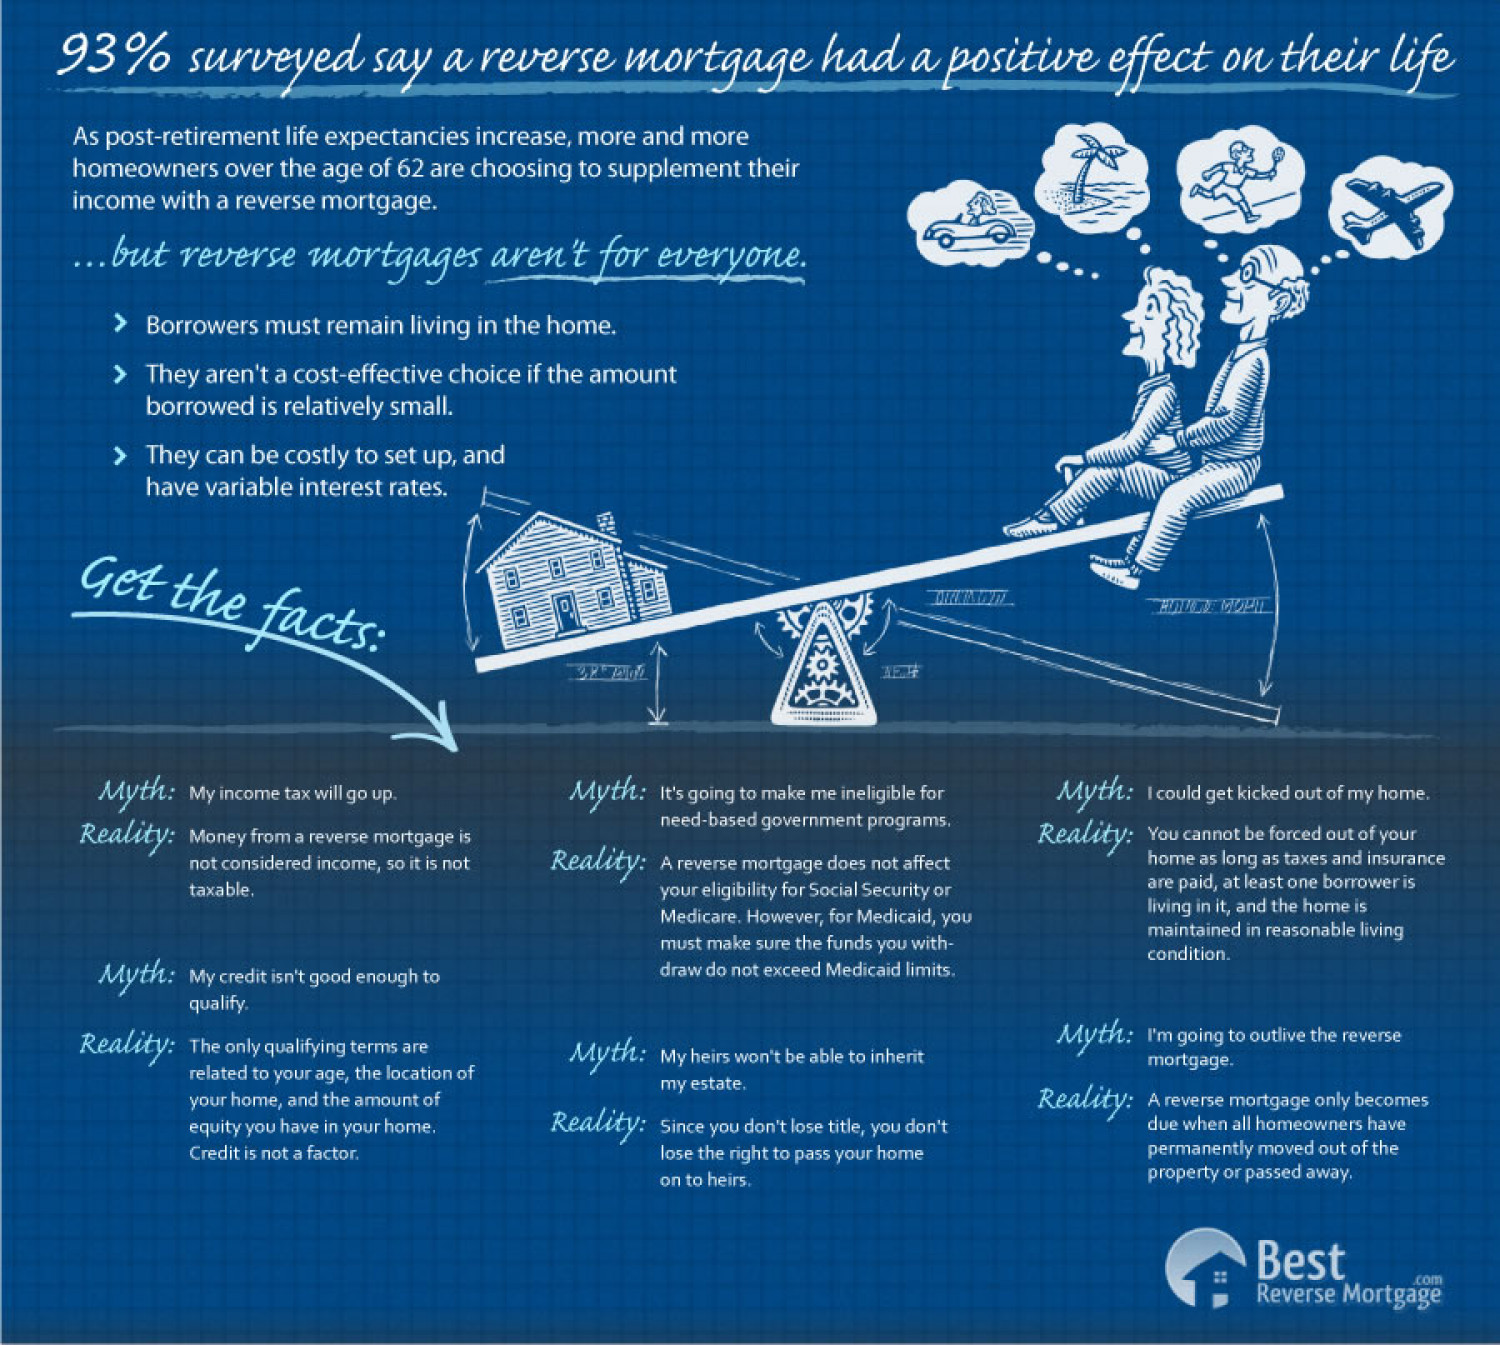 Reverse Mortgage Myths and Truths Infographic